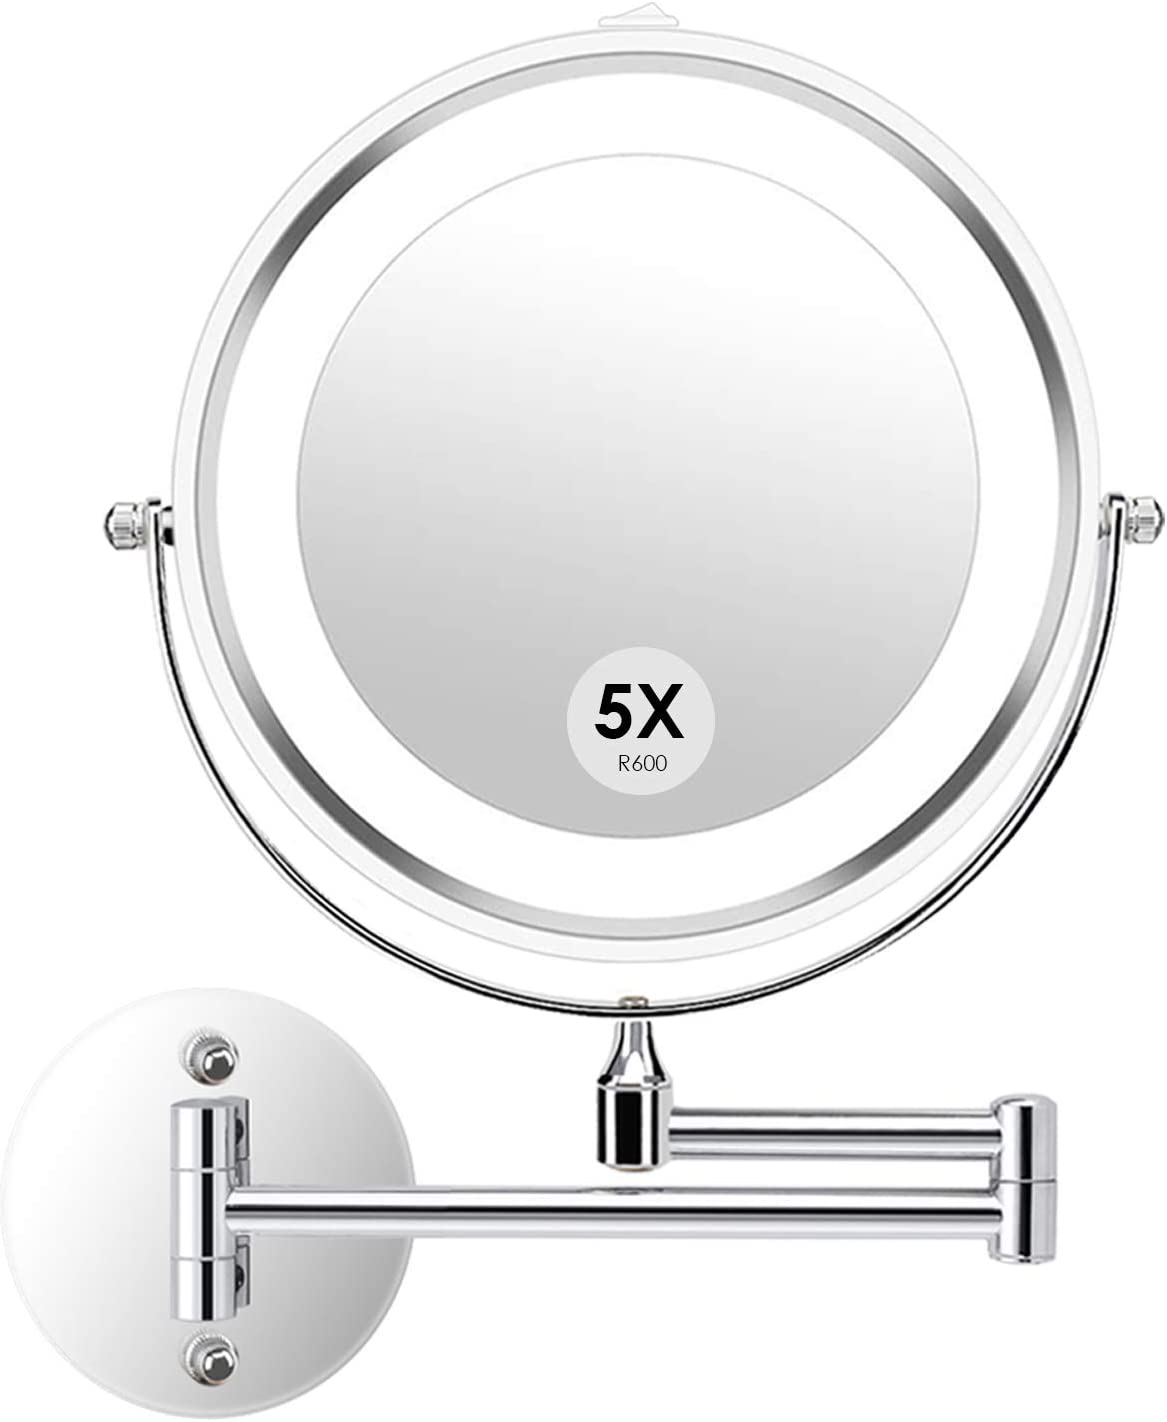 The Best wall mounted magnifying makeup mirror - Our pick